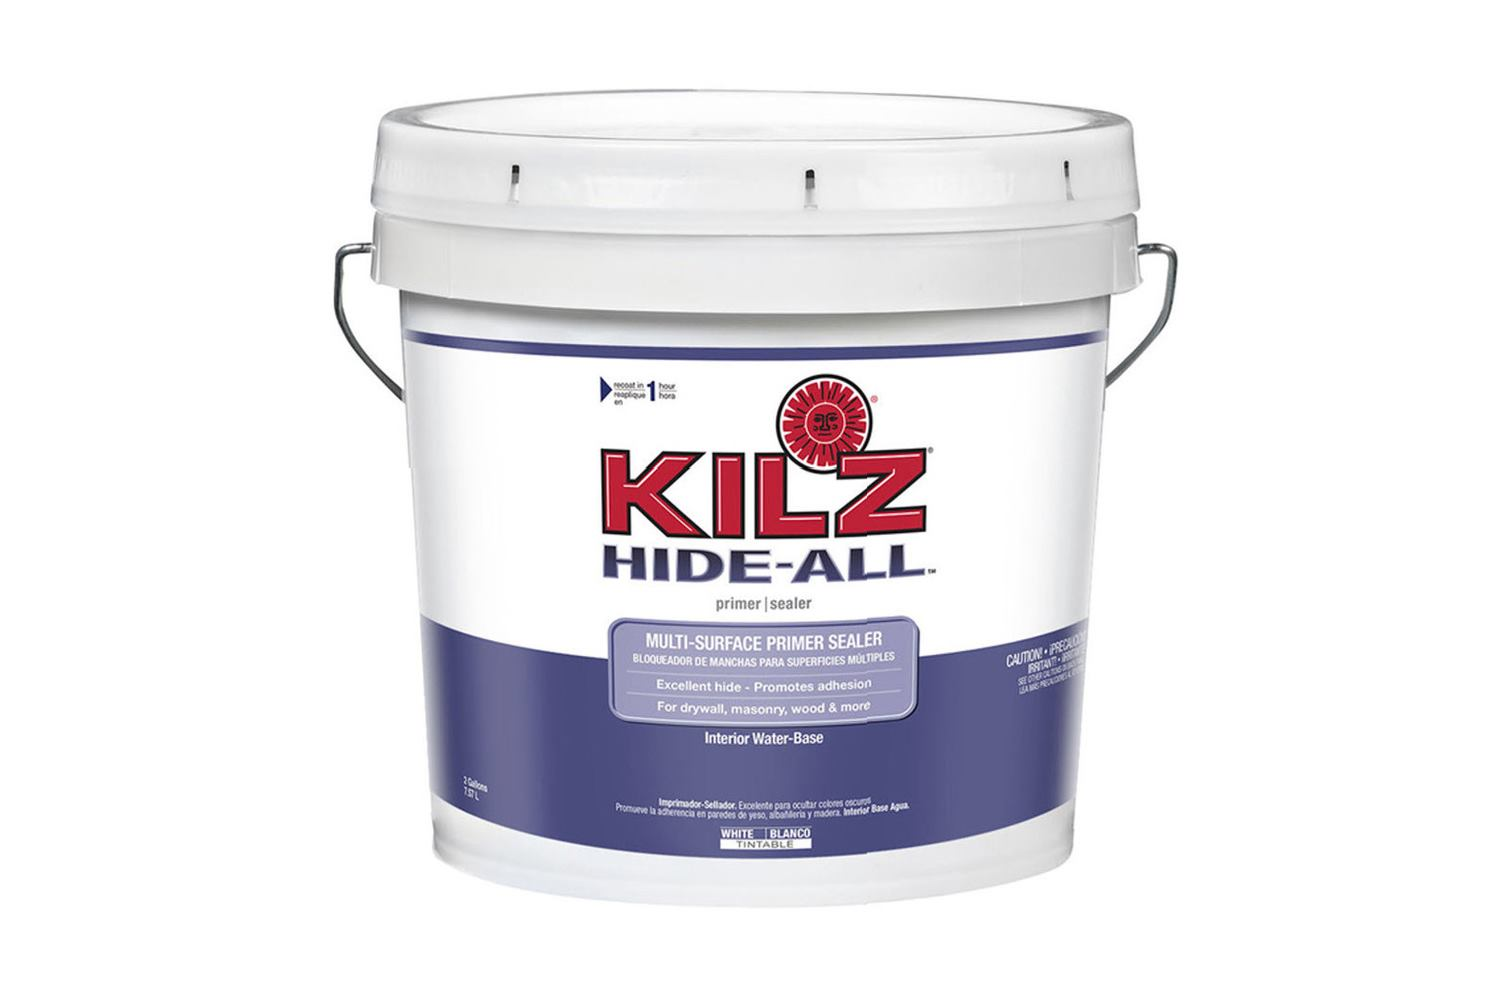 Kilz Adds 1 And 5 Gallon Hide All Bucket Sizes Jlc Online